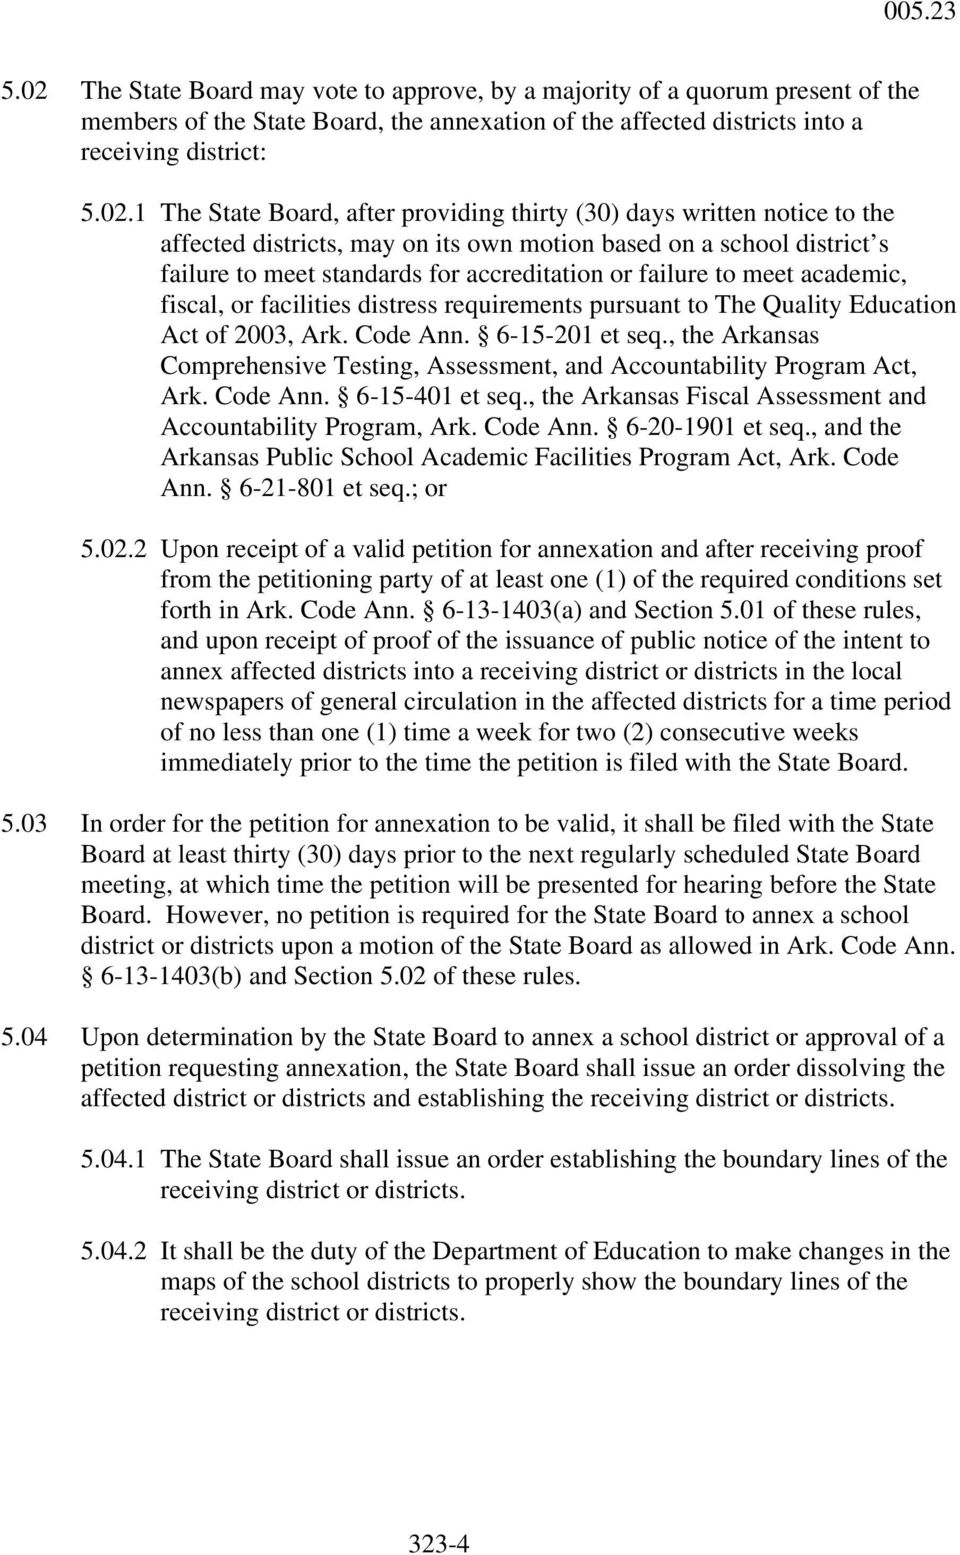 academic, fiscal, or facilities distress requirements pursuant to The Quality Education Act of 2003, Ark. Code Ann. 6-15-201 et seq.